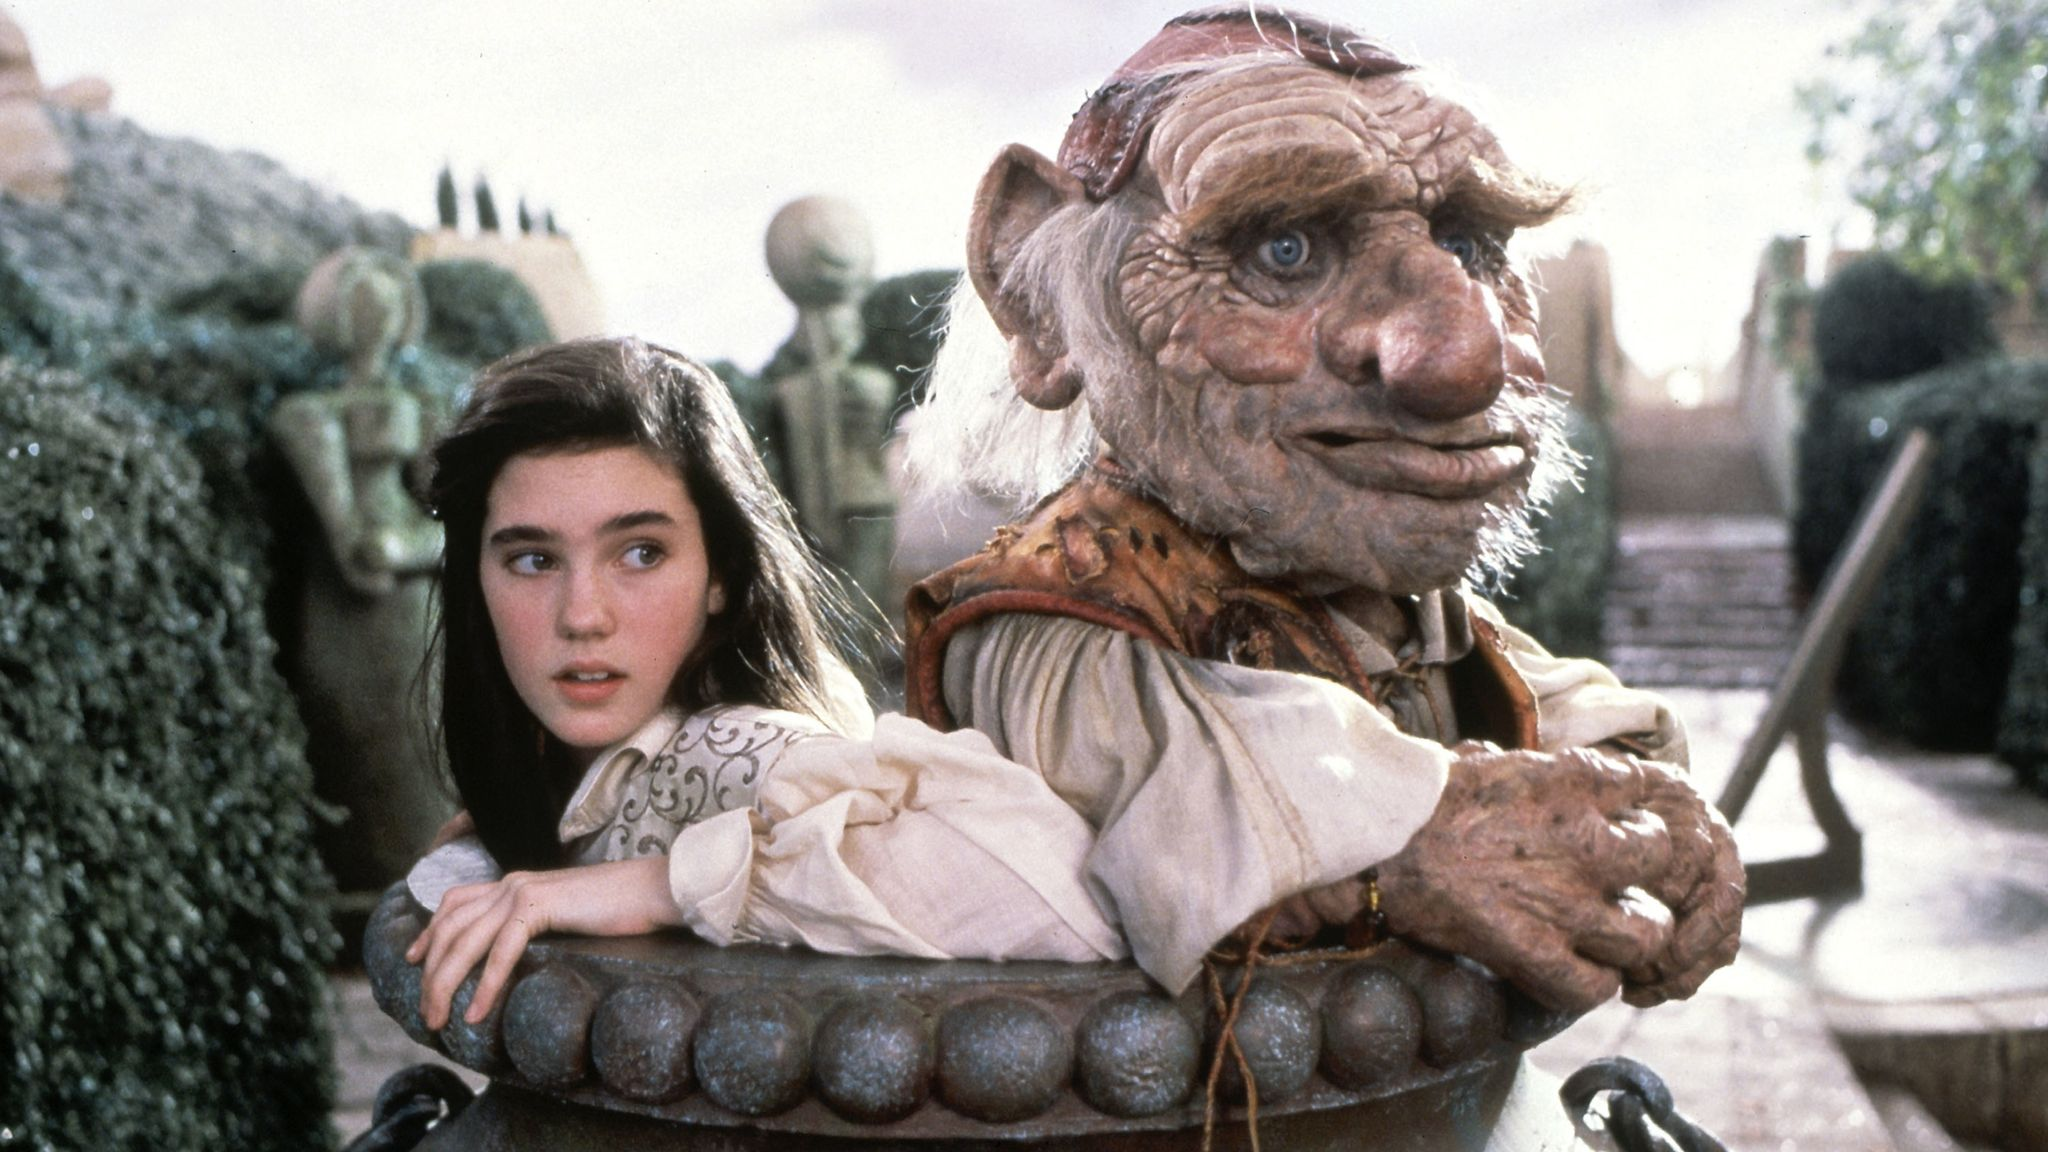 Labyrinth sequel: Scott Derrickson to direct follow-up to 1986 fantasy film  | Ents & Arts News | Sky News